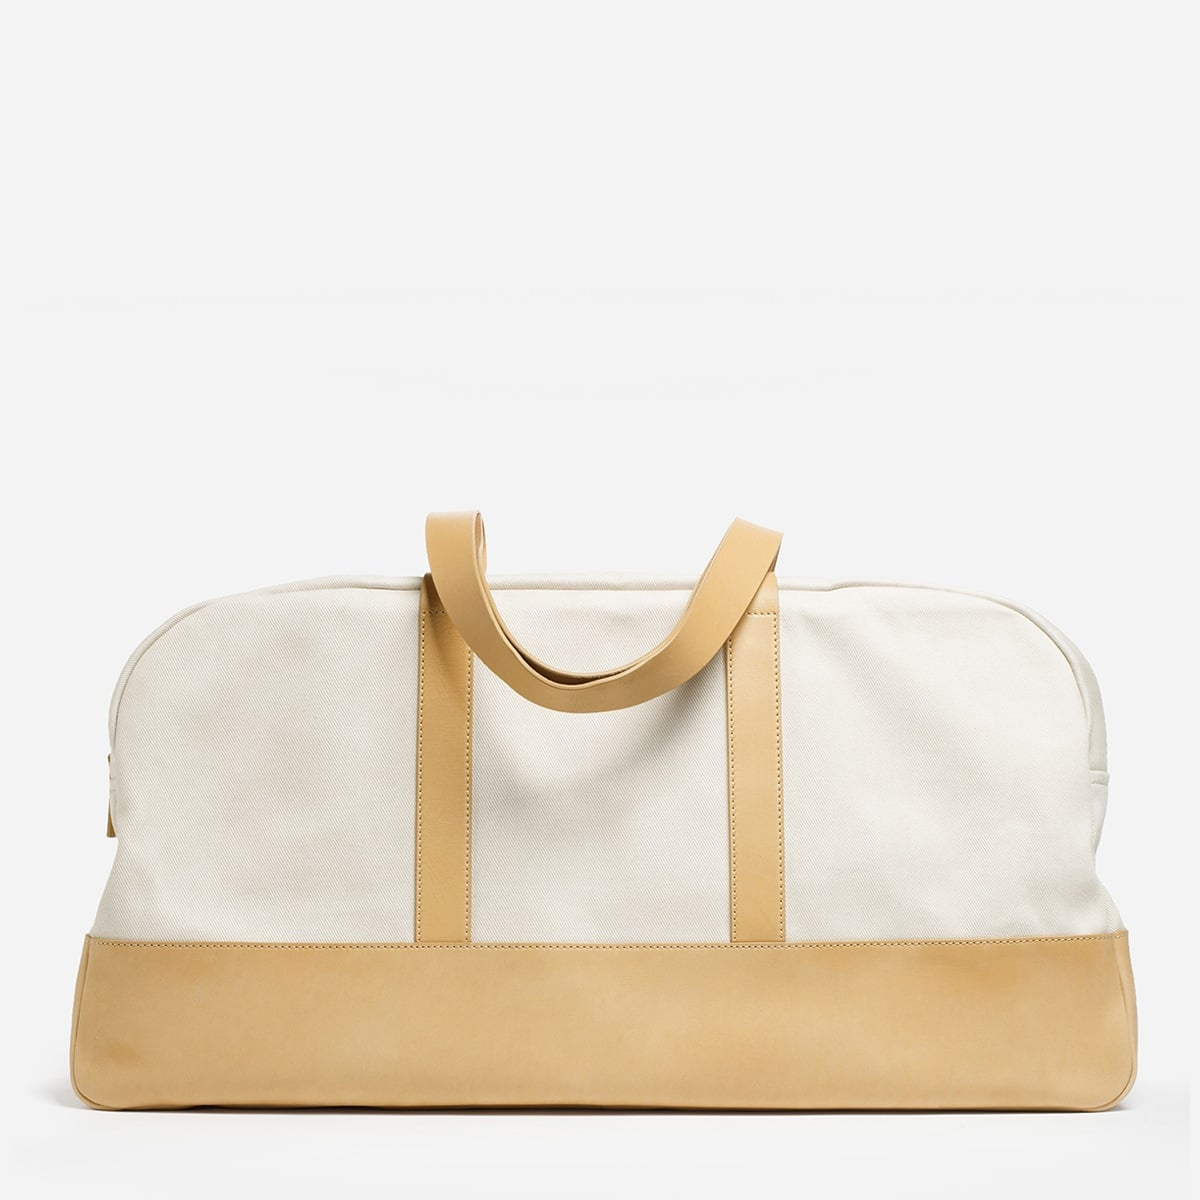 Everlane Premium Leather-Base Weekender ($130)